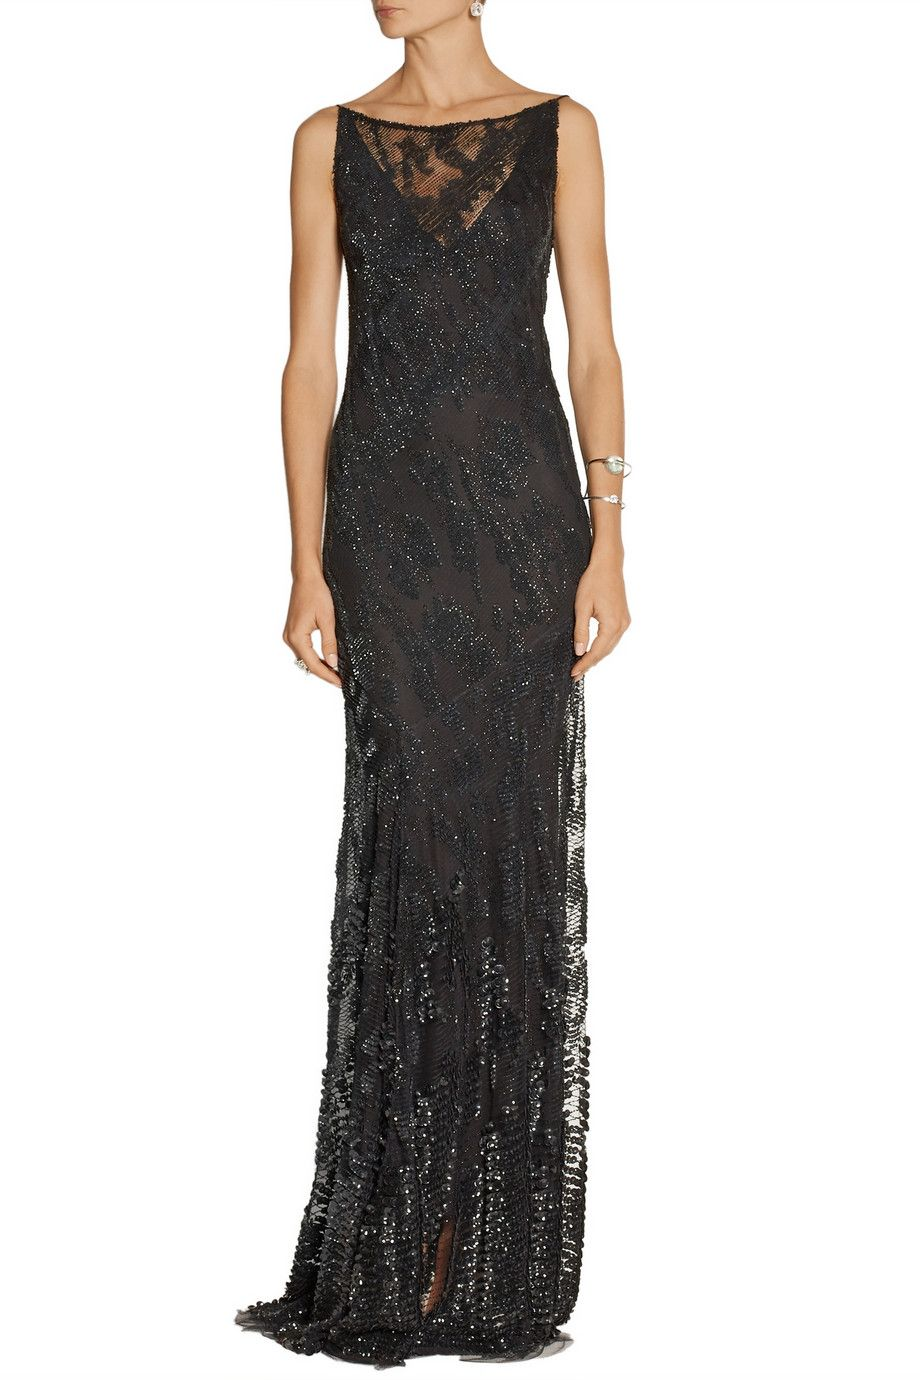 Donna Karan New York Embellished tulle gown | Things to Wear ...